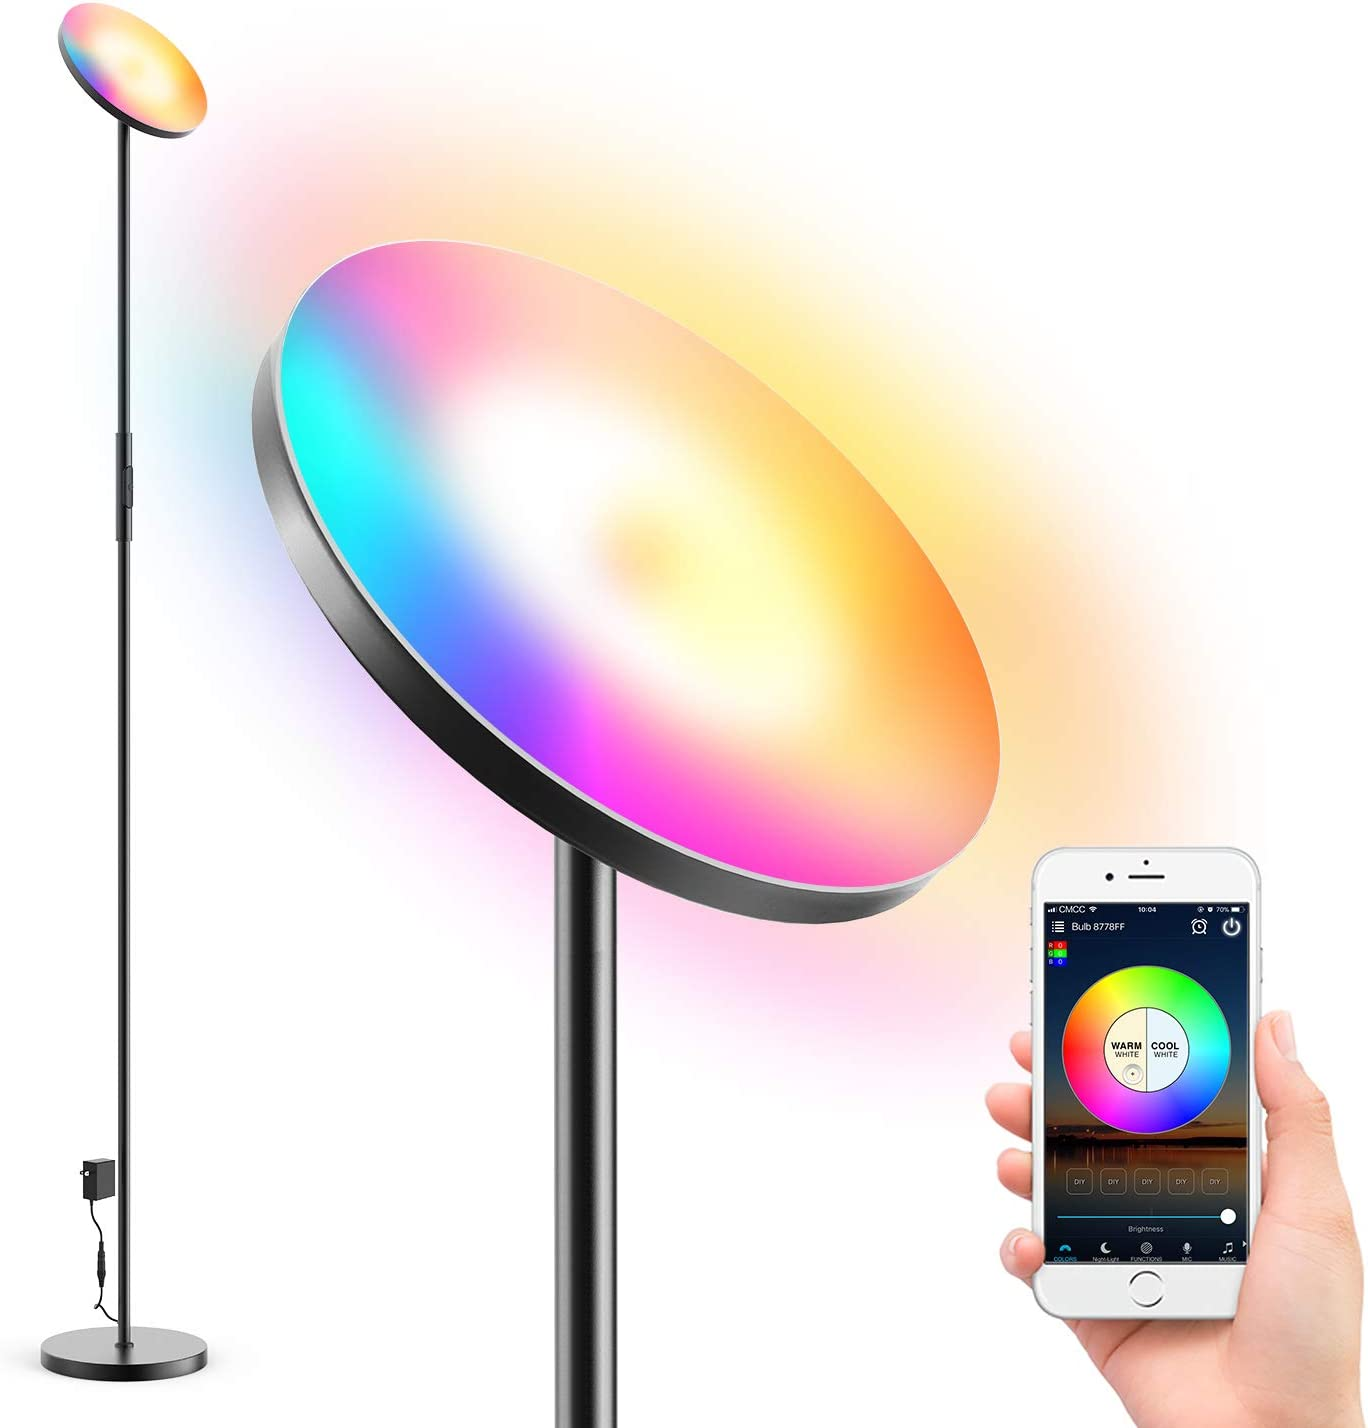 Isenjo Smart WiFi LED Floor Lamp,Super Bright RGB Dimmable Color Changing Smart Standing Lamp, Touch & APP Control, Works with Alexa Google Home, for Living Room Bedroom Office,Adjustable Head - Black